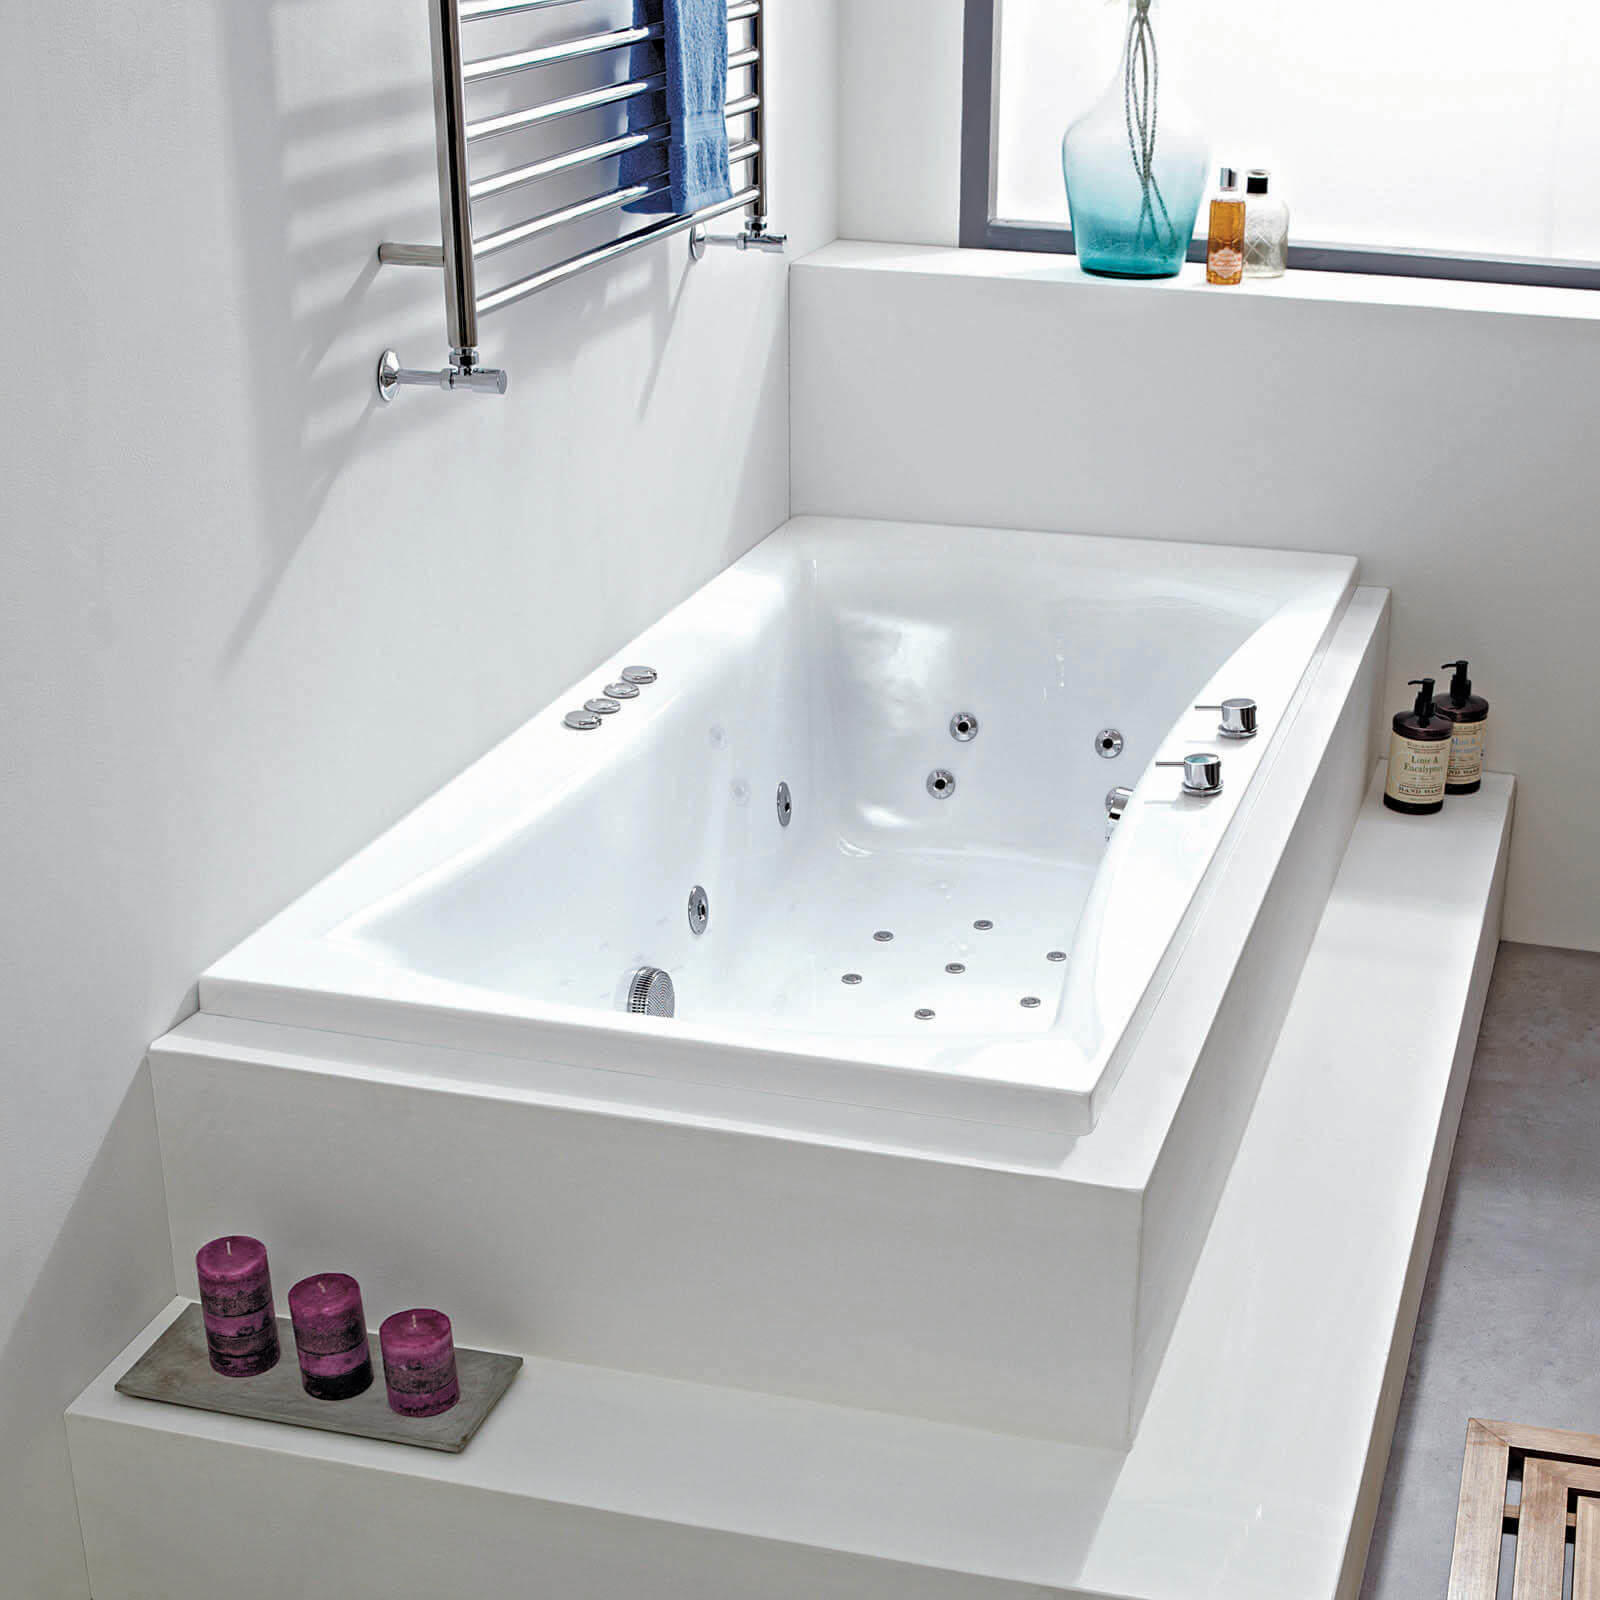 Cassiopeia 28 jet whirlpool bath 2 sizes - Bathtub in shower ...